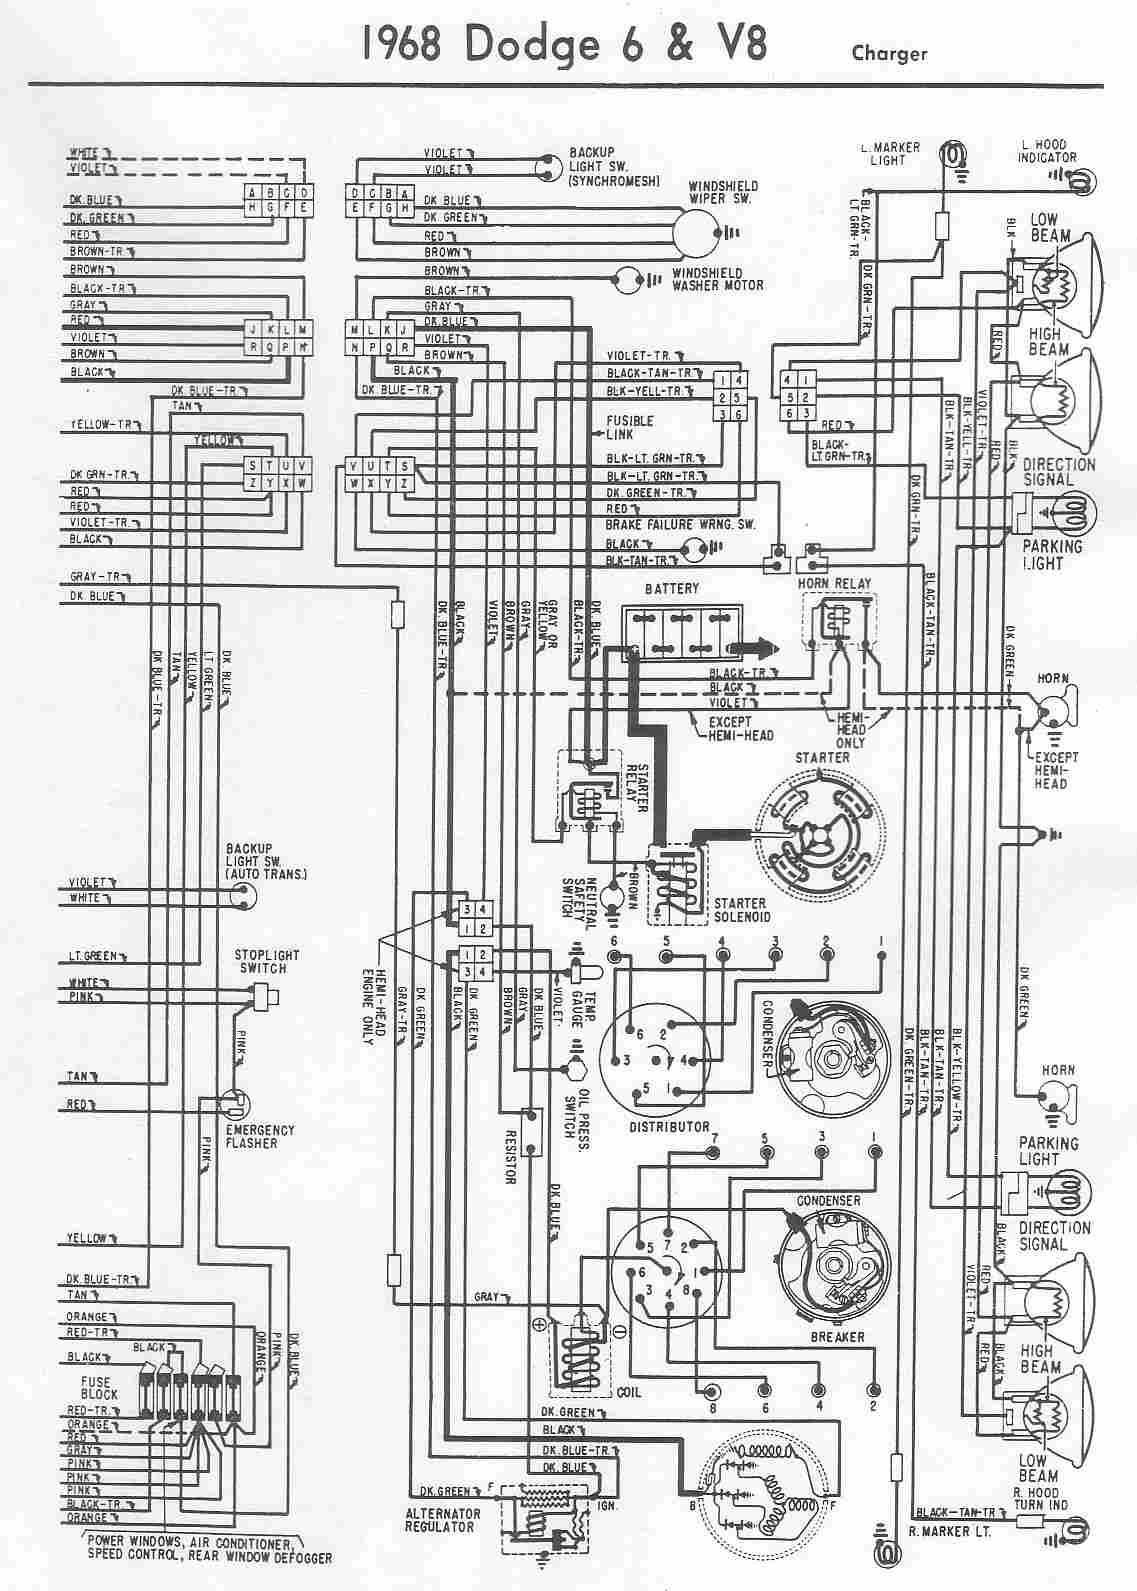 hight resolution of 1967 charger wiring diagram free download schematic wiring diagram supro amp schematic 1968 coro wiring diagram schematic